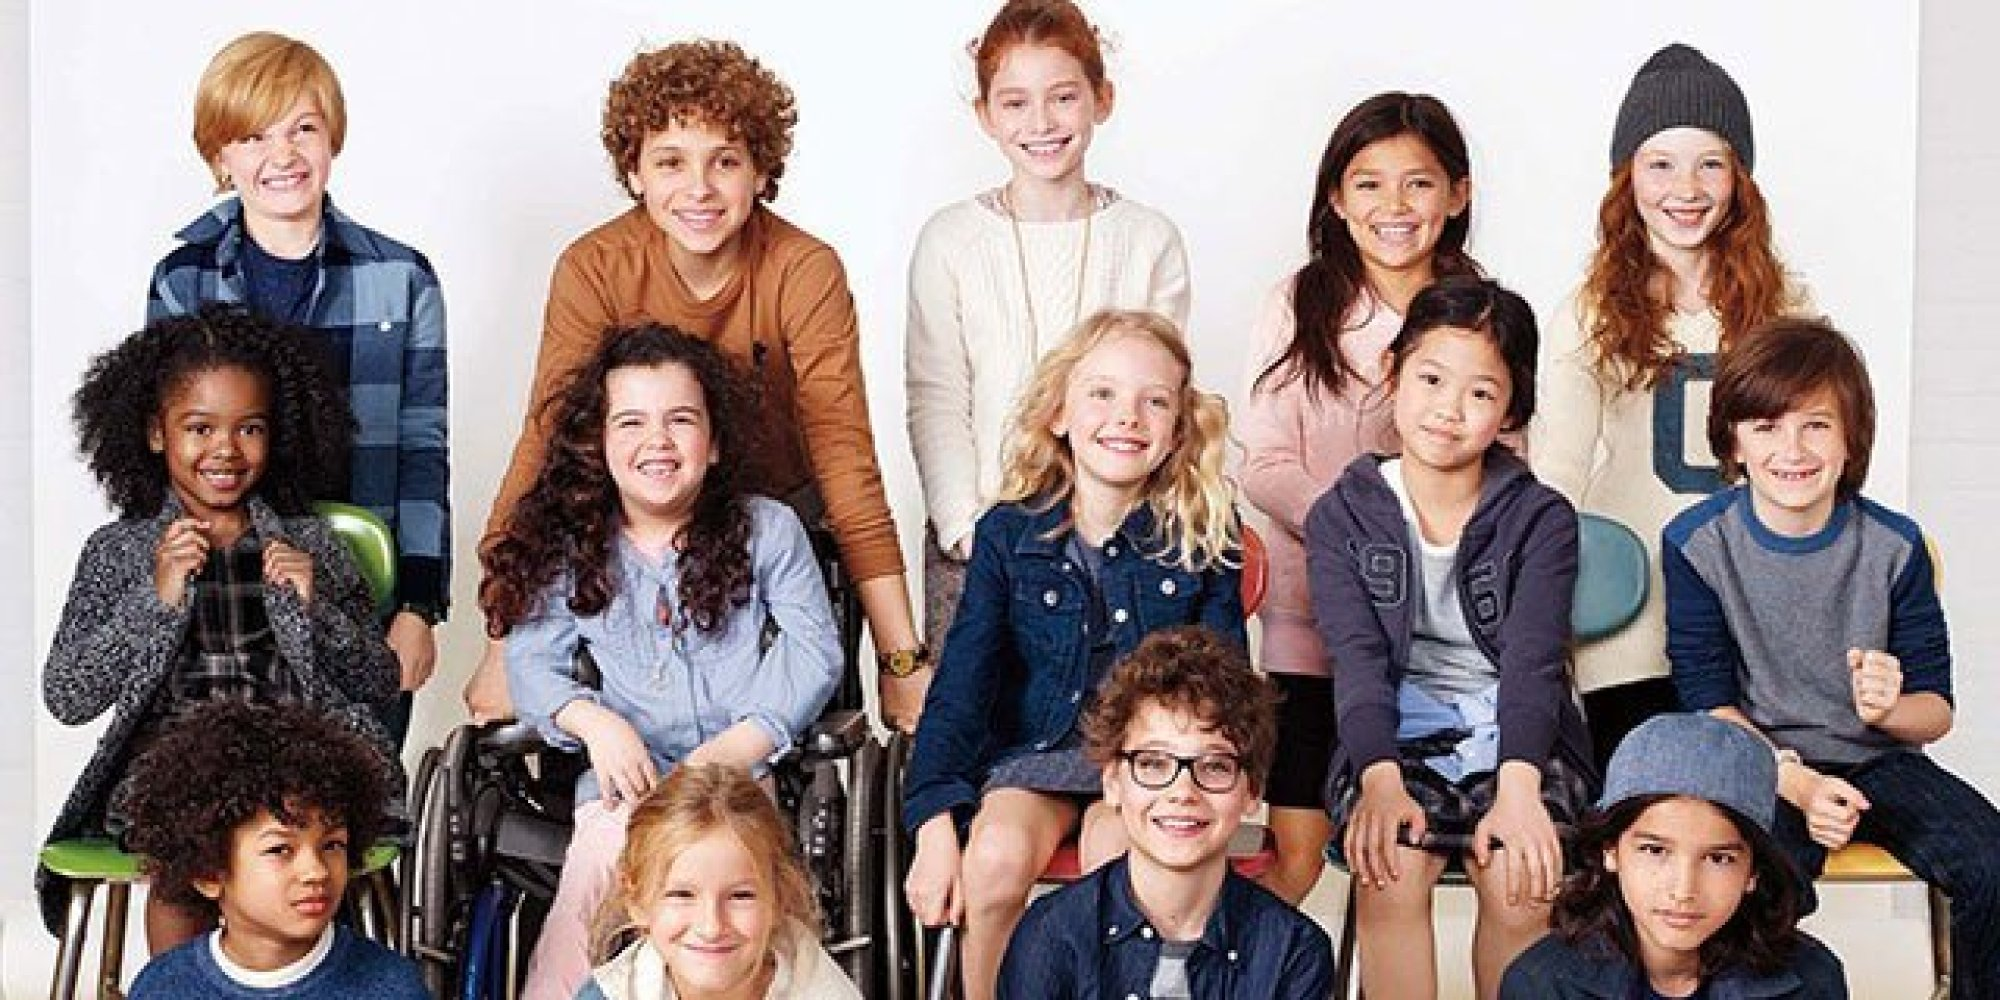 The Inclusive Gap Ad That Has Everyone Cheering